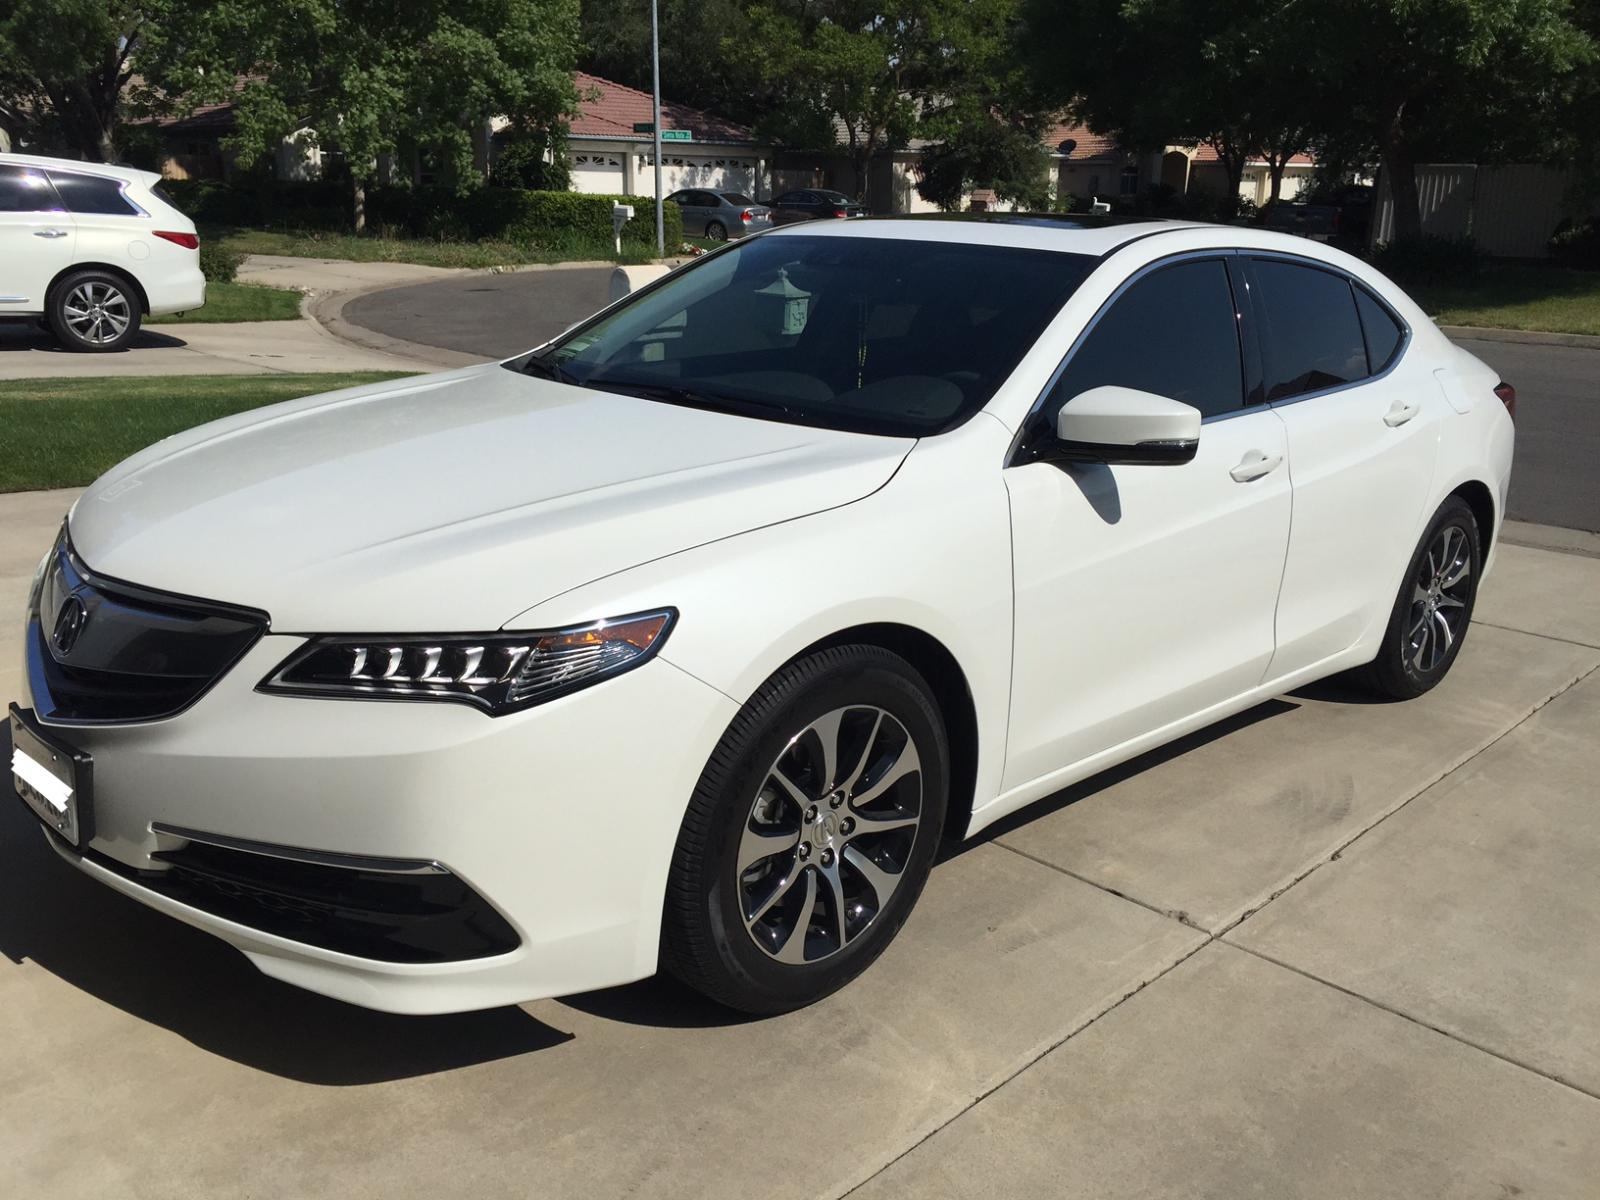 Acura Tlx Forum >> Bellanova White Pearl picture thread - Page 3 - Acura TLX Forum